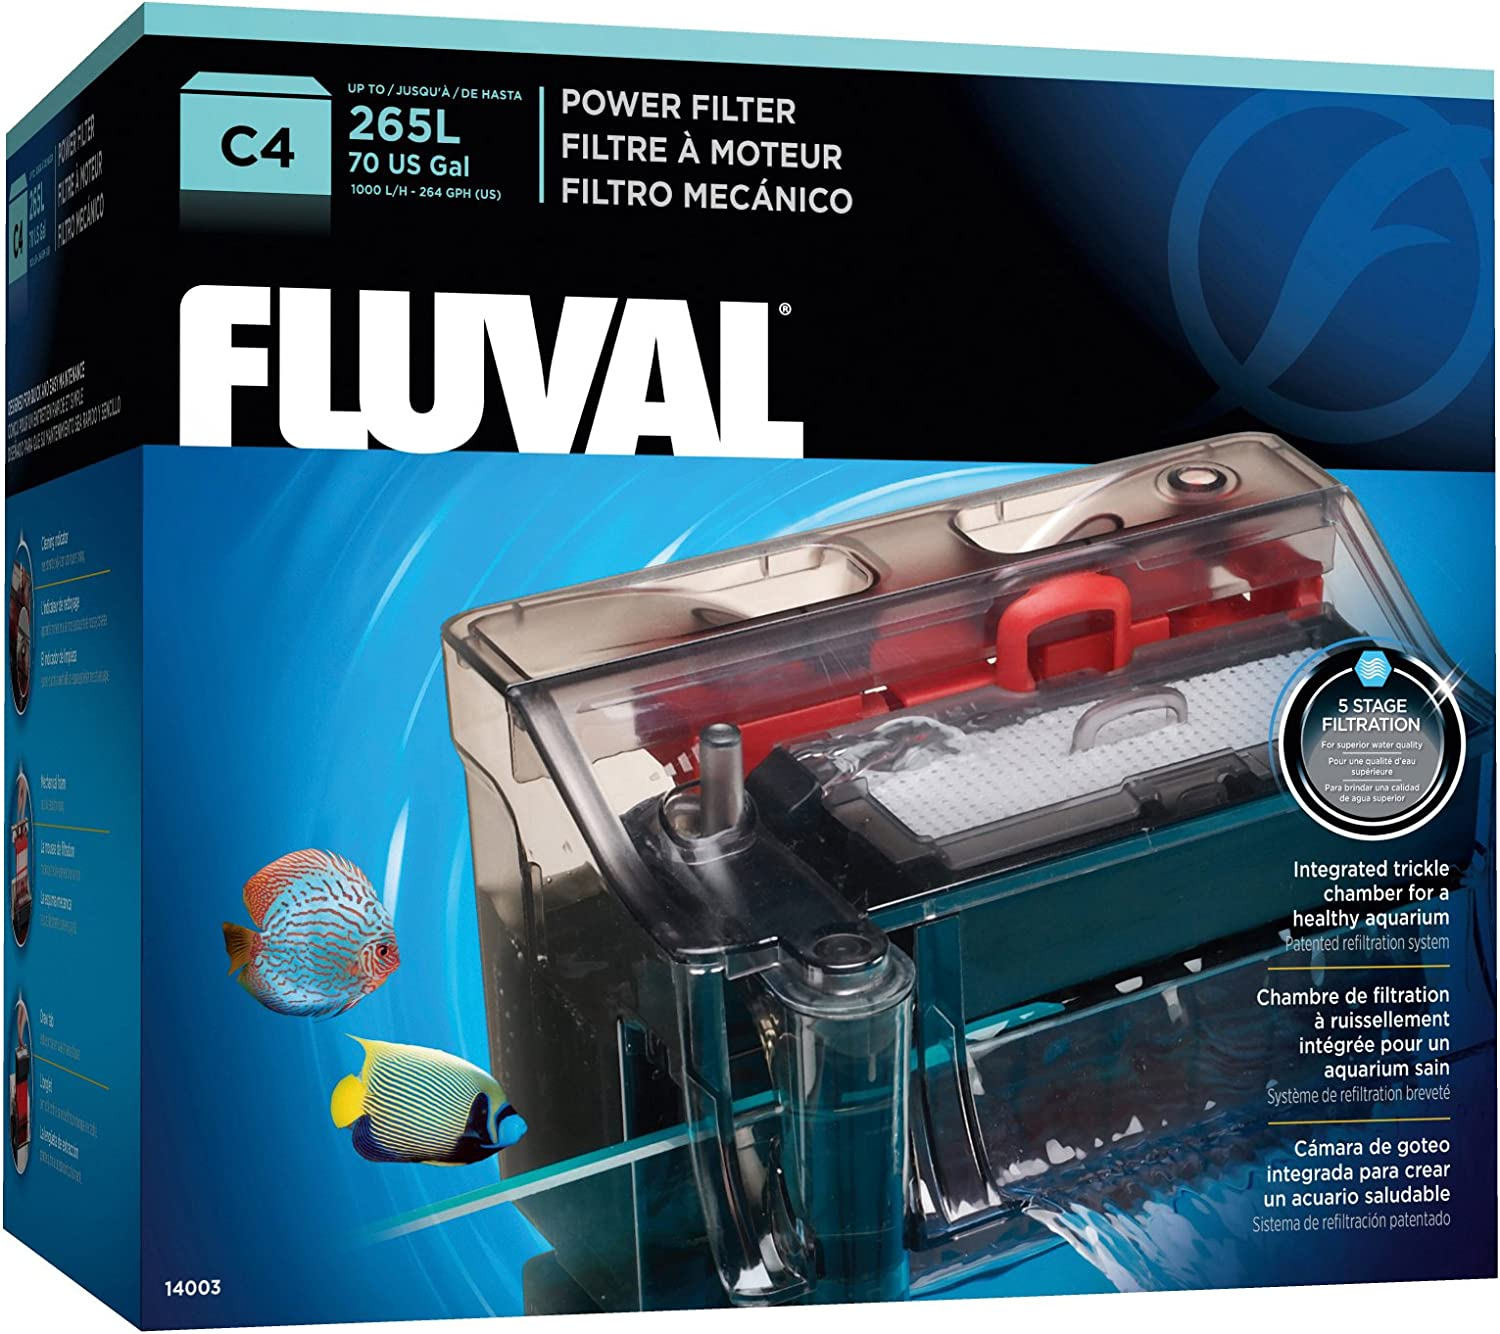 Fluval C4 Power Filter for 55 gallon aquarium